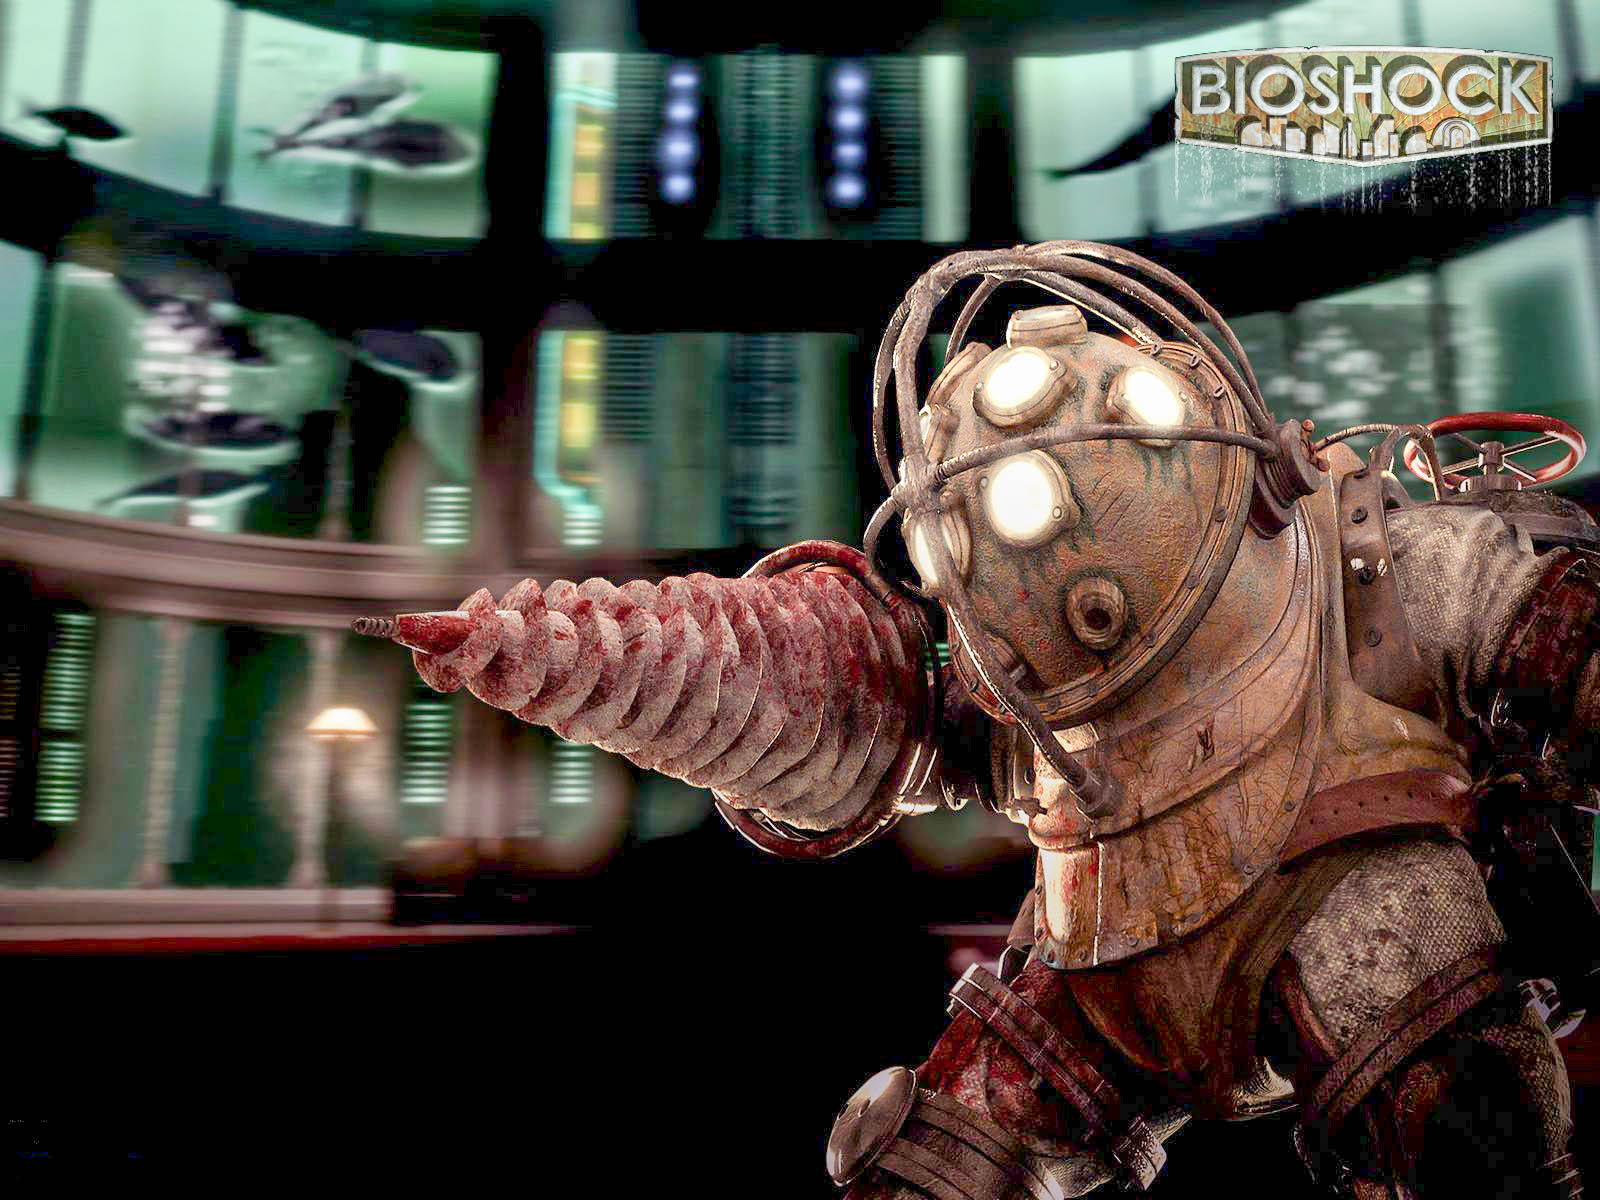 bioshock amazing hd wallpapers high resolution